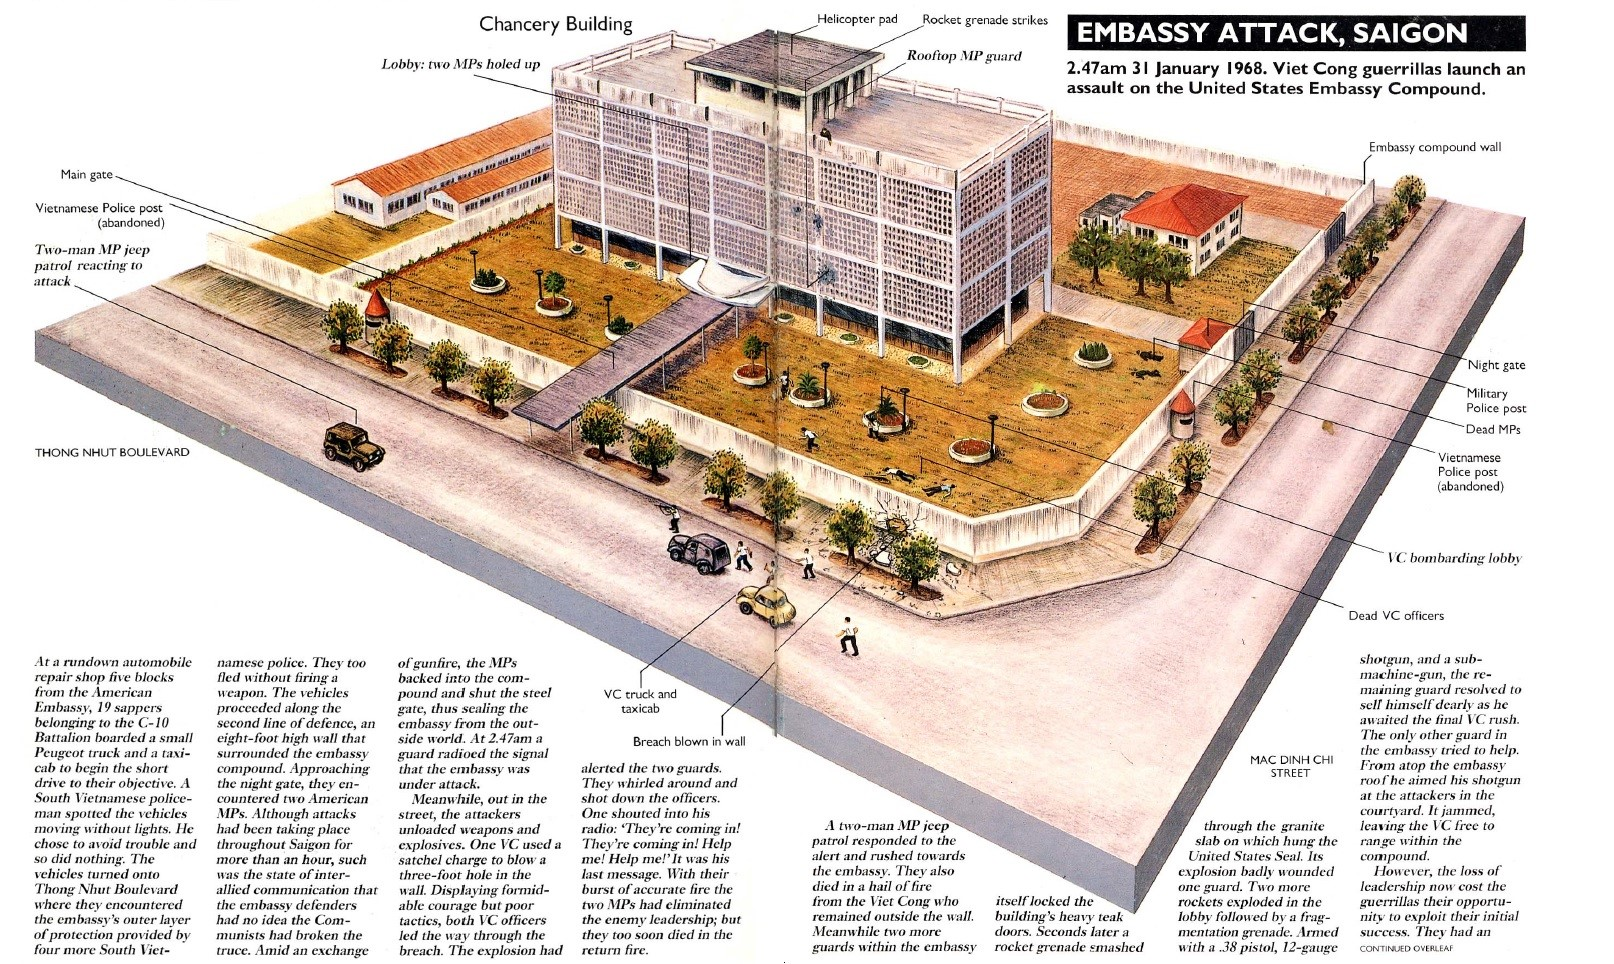 Attack on the US Embassy